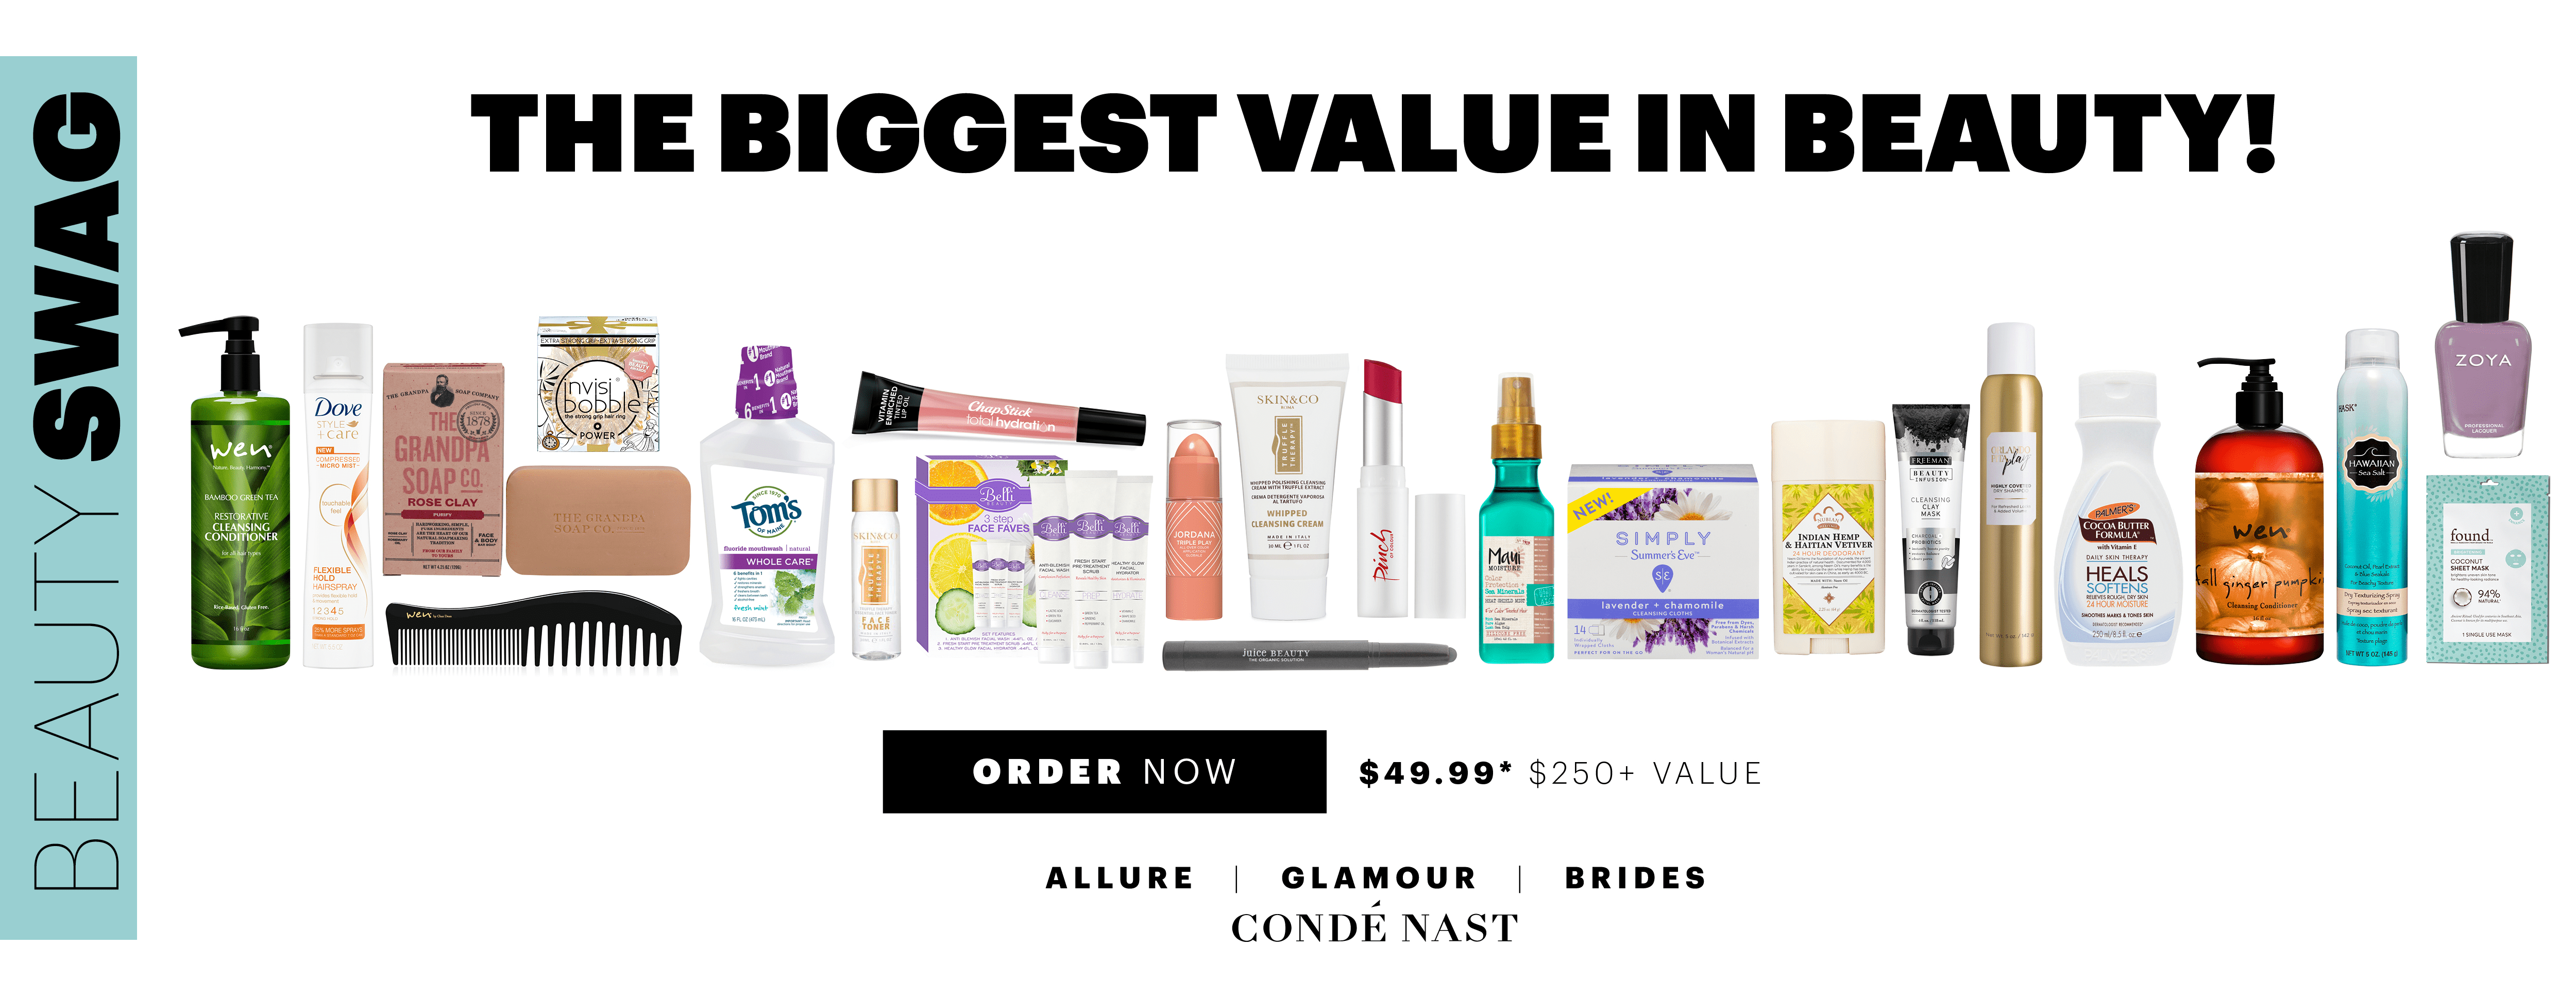 Allure Beauty Swag Box September 2018 Available Now!